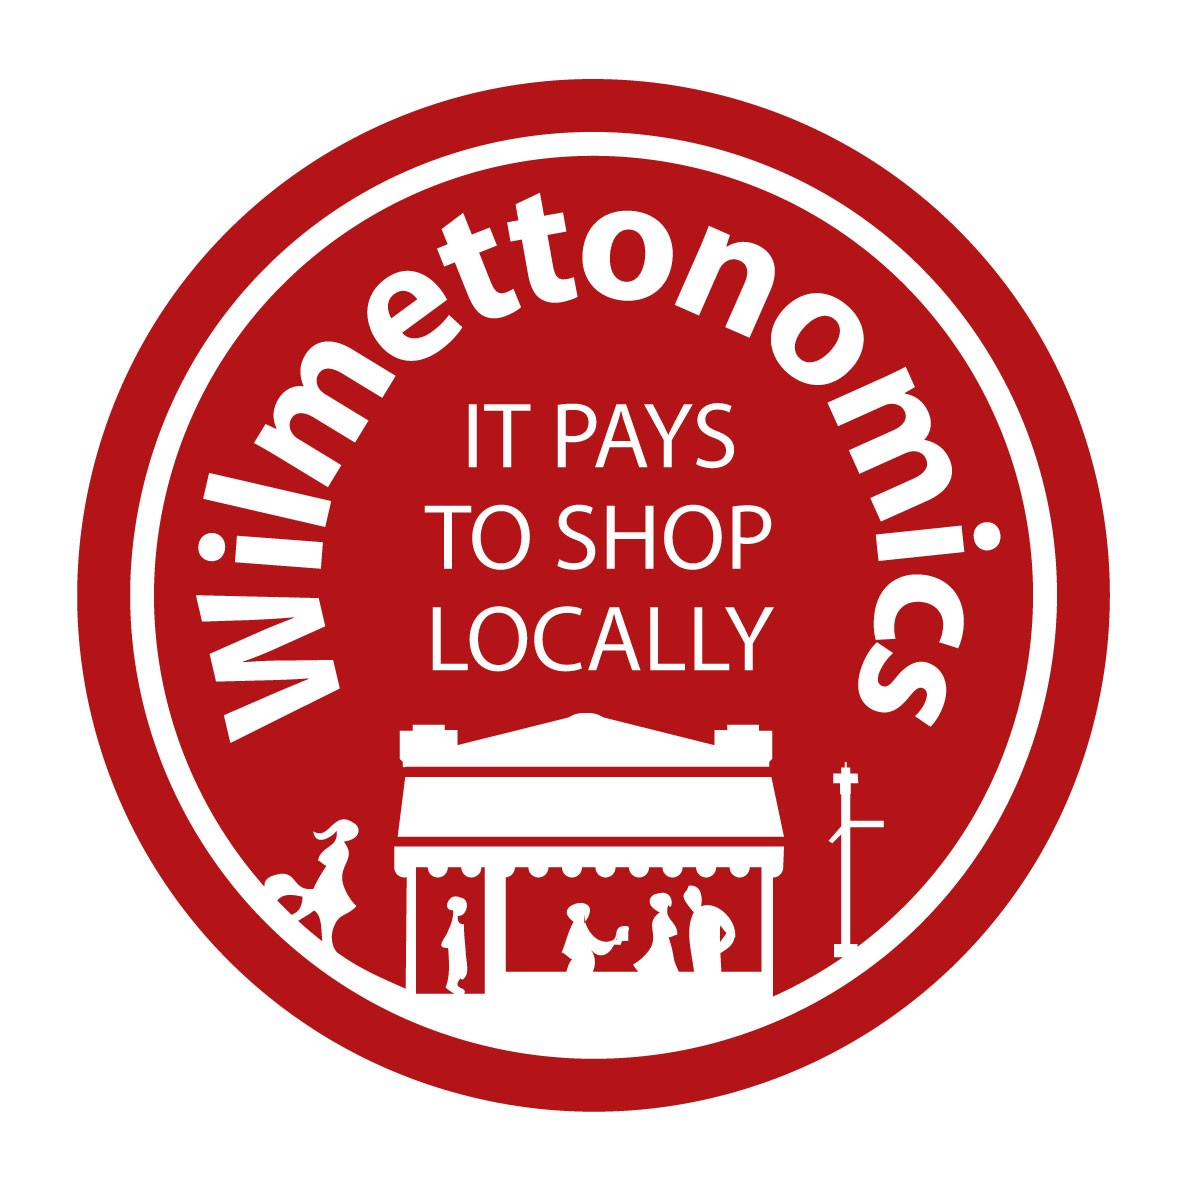 Wilmettonomics: Shop Local